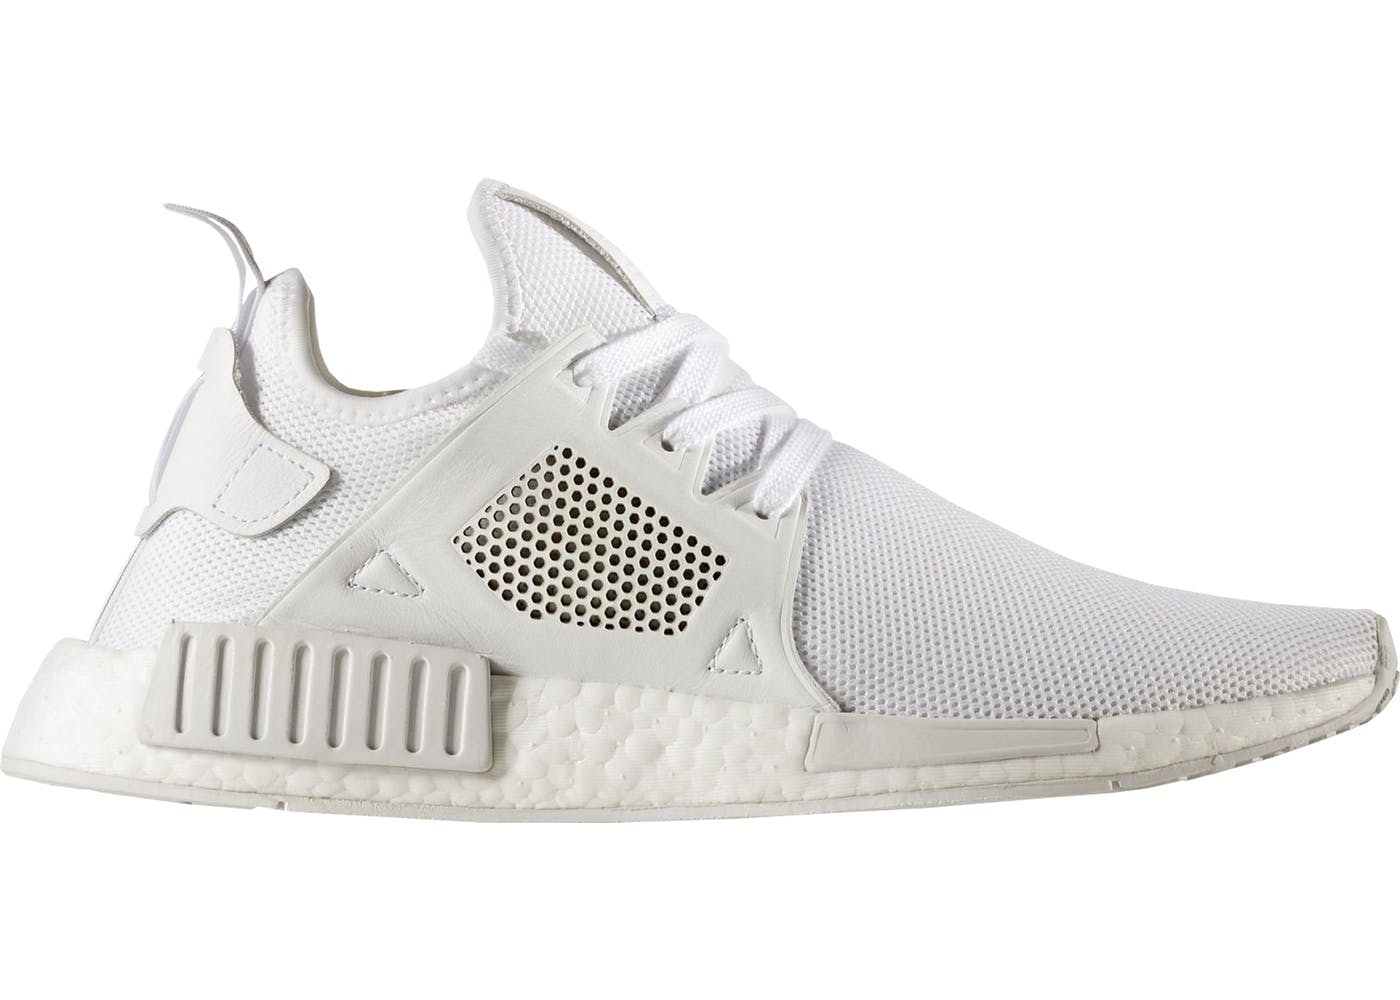 adidas nmd xr1 triple white 2017. Black Bedroom Furniture Sets. Home Design Ideas